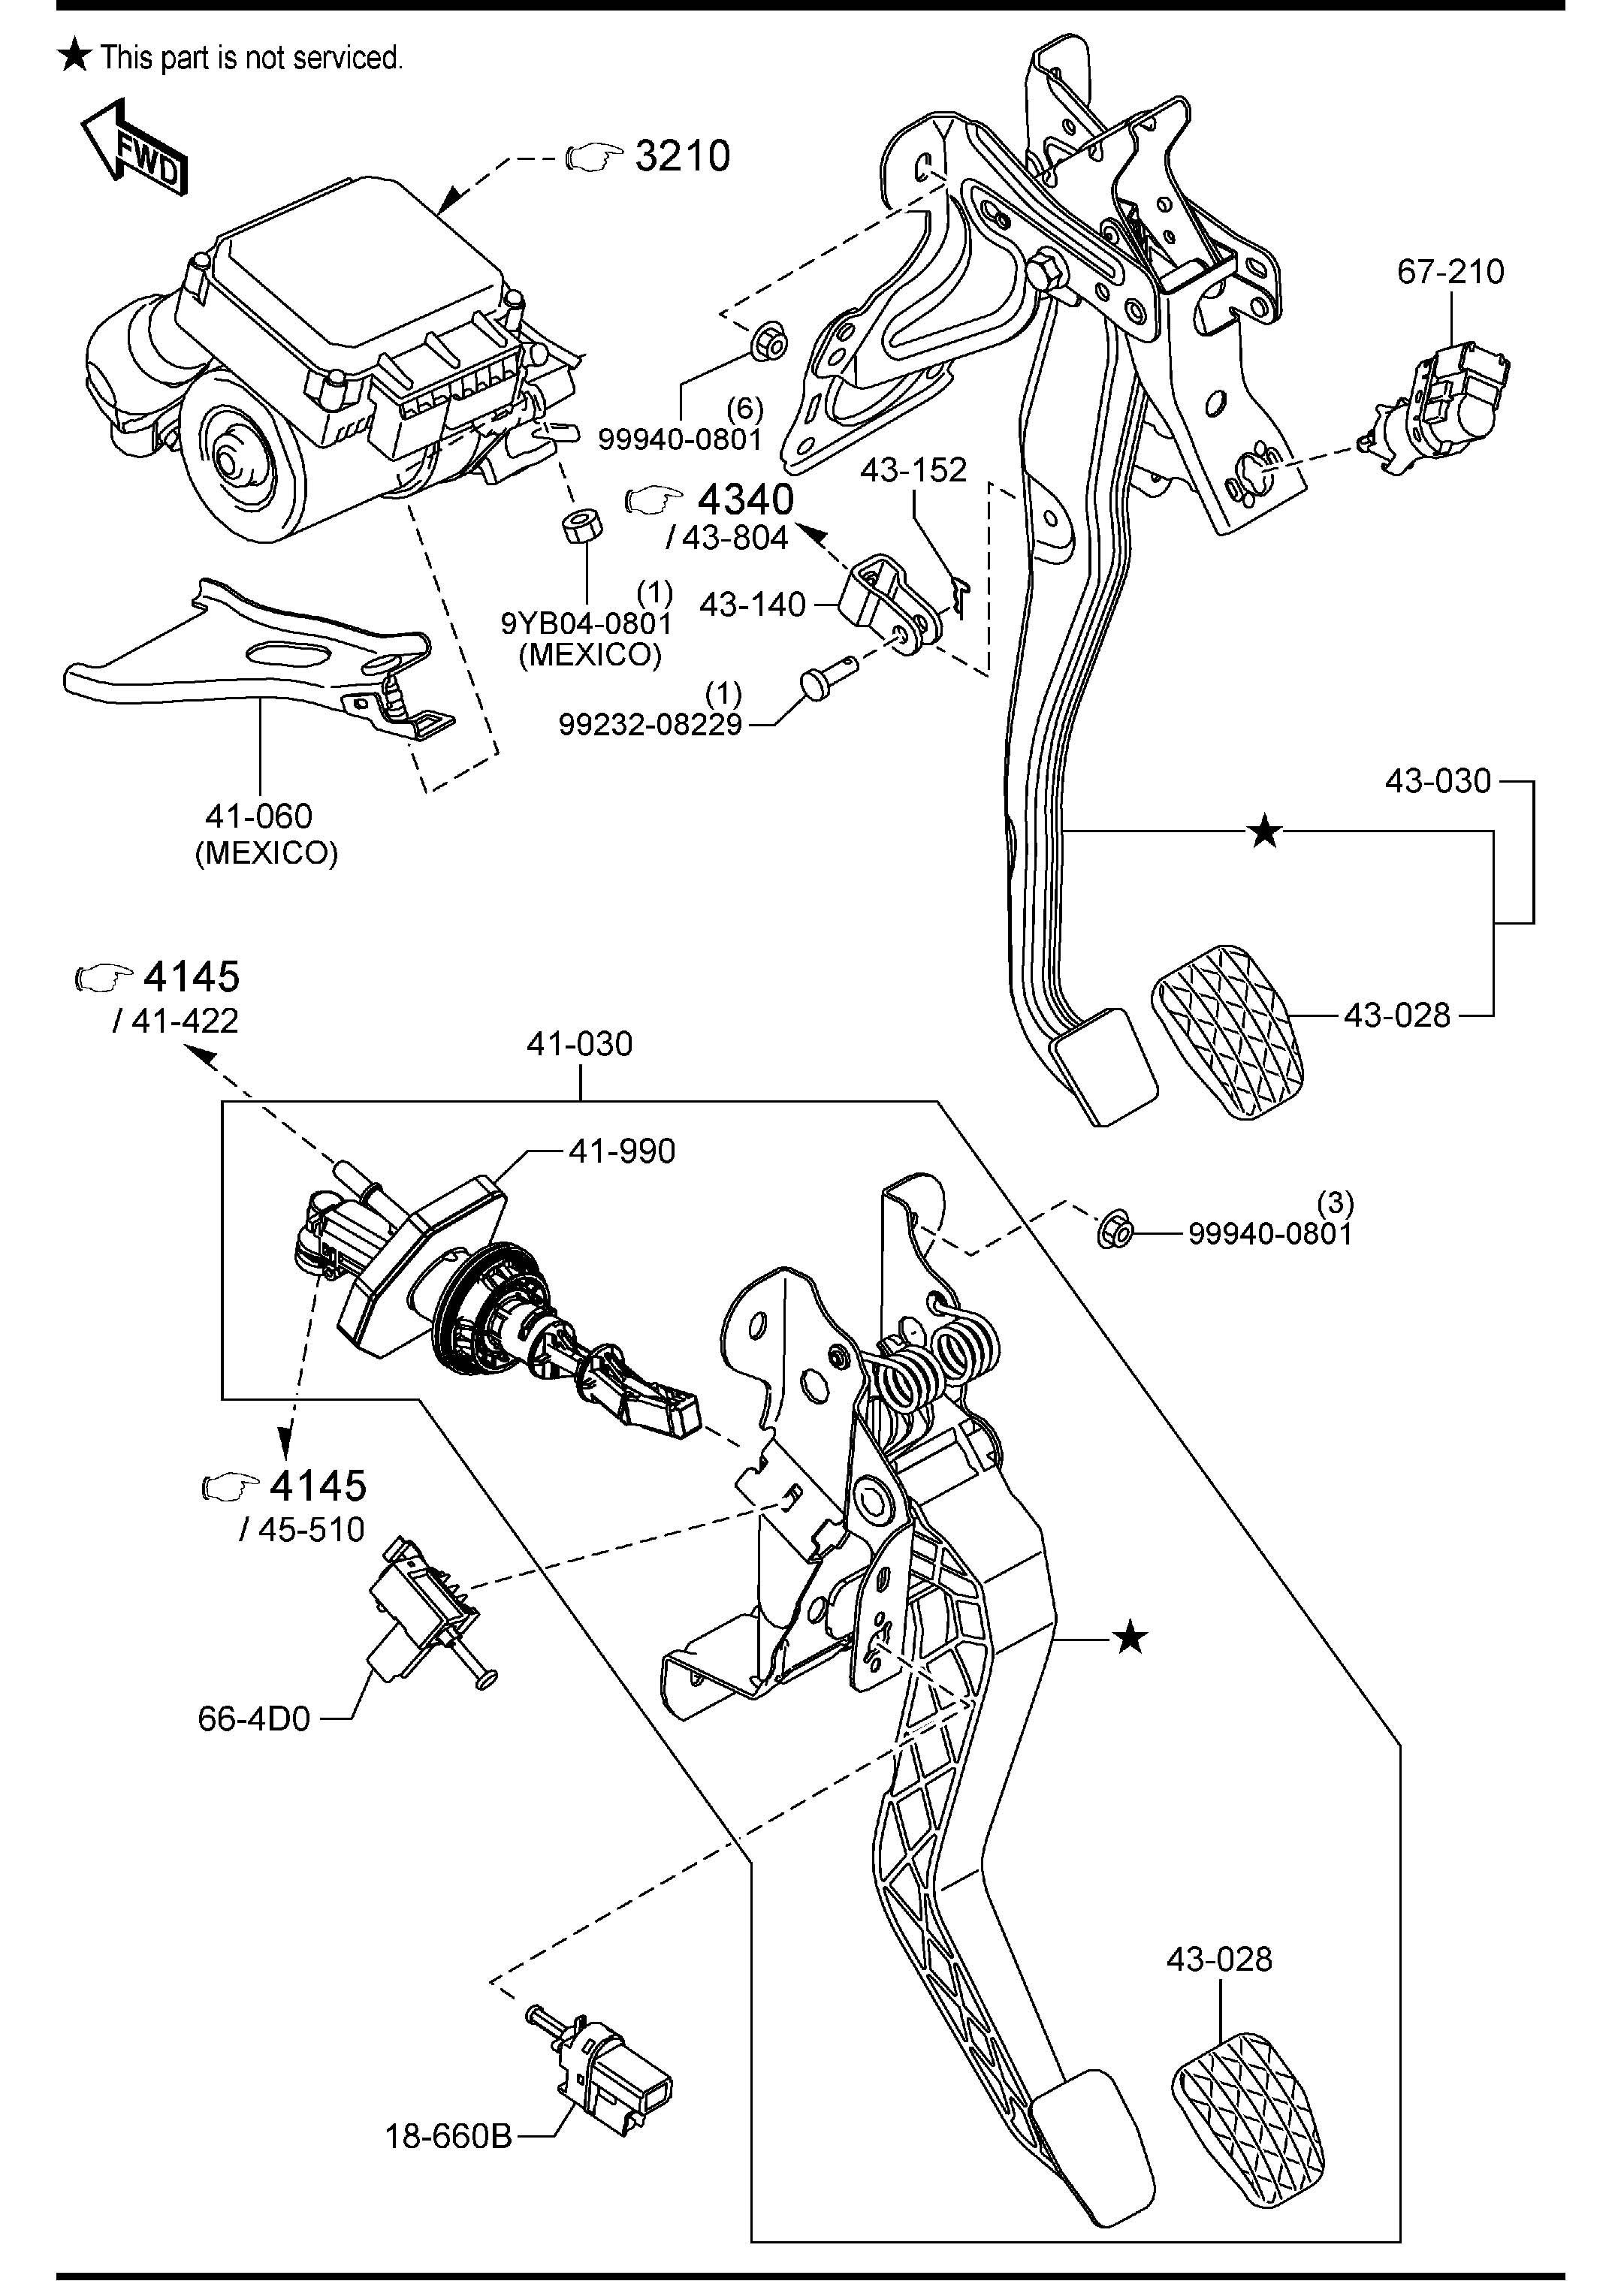 Mazda Miata As Well 2001 626 Wiring Diagrams 1998 Buick